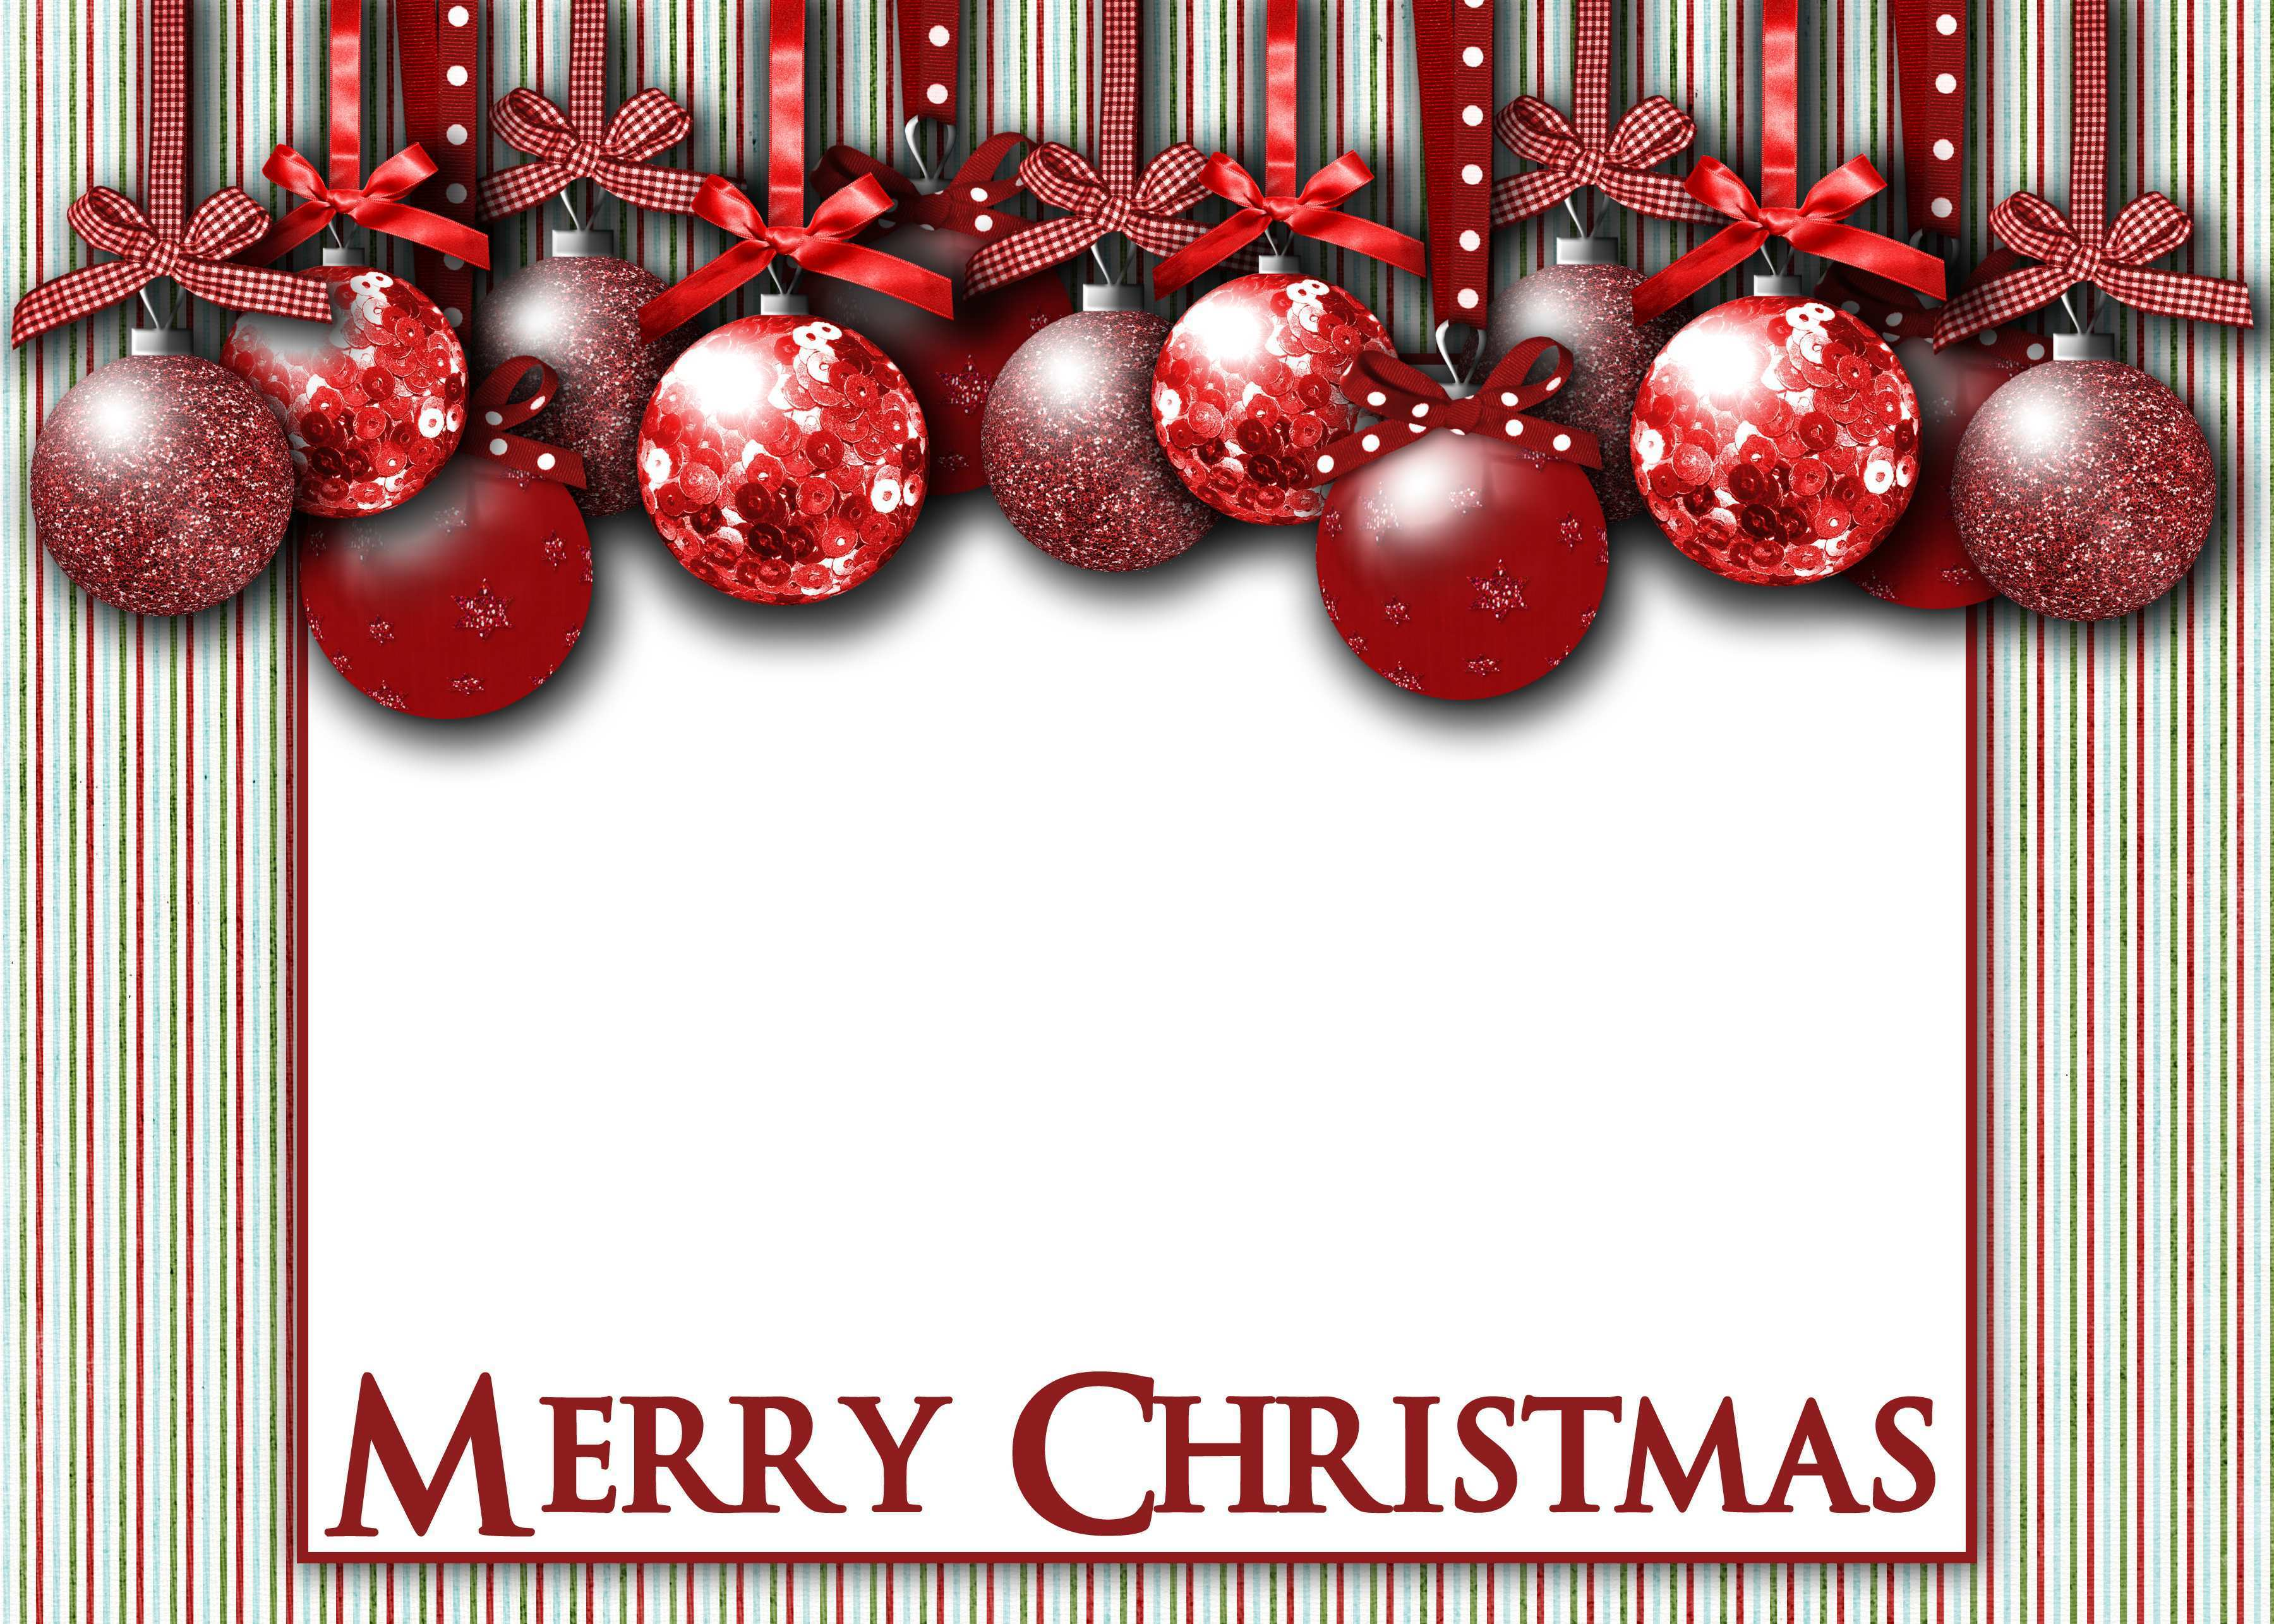 47 The Best Christmas Card Templates Images Now with Christmas Card Templates Images